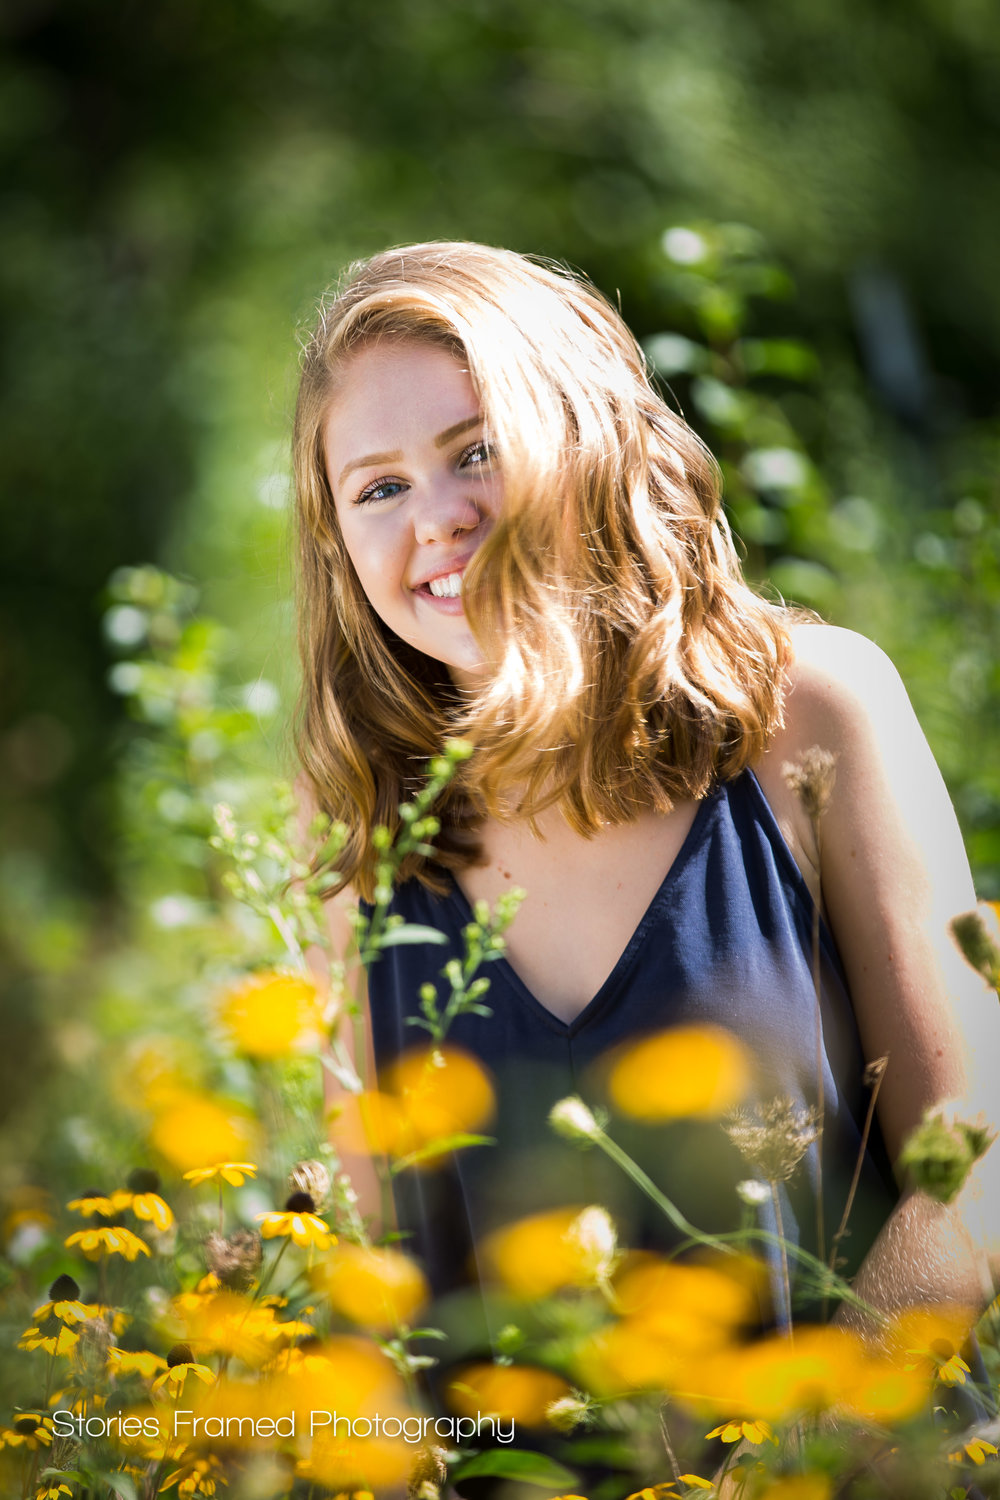 Stories Framed Photography | MKEseniors | Tosa East HS girl in flowers